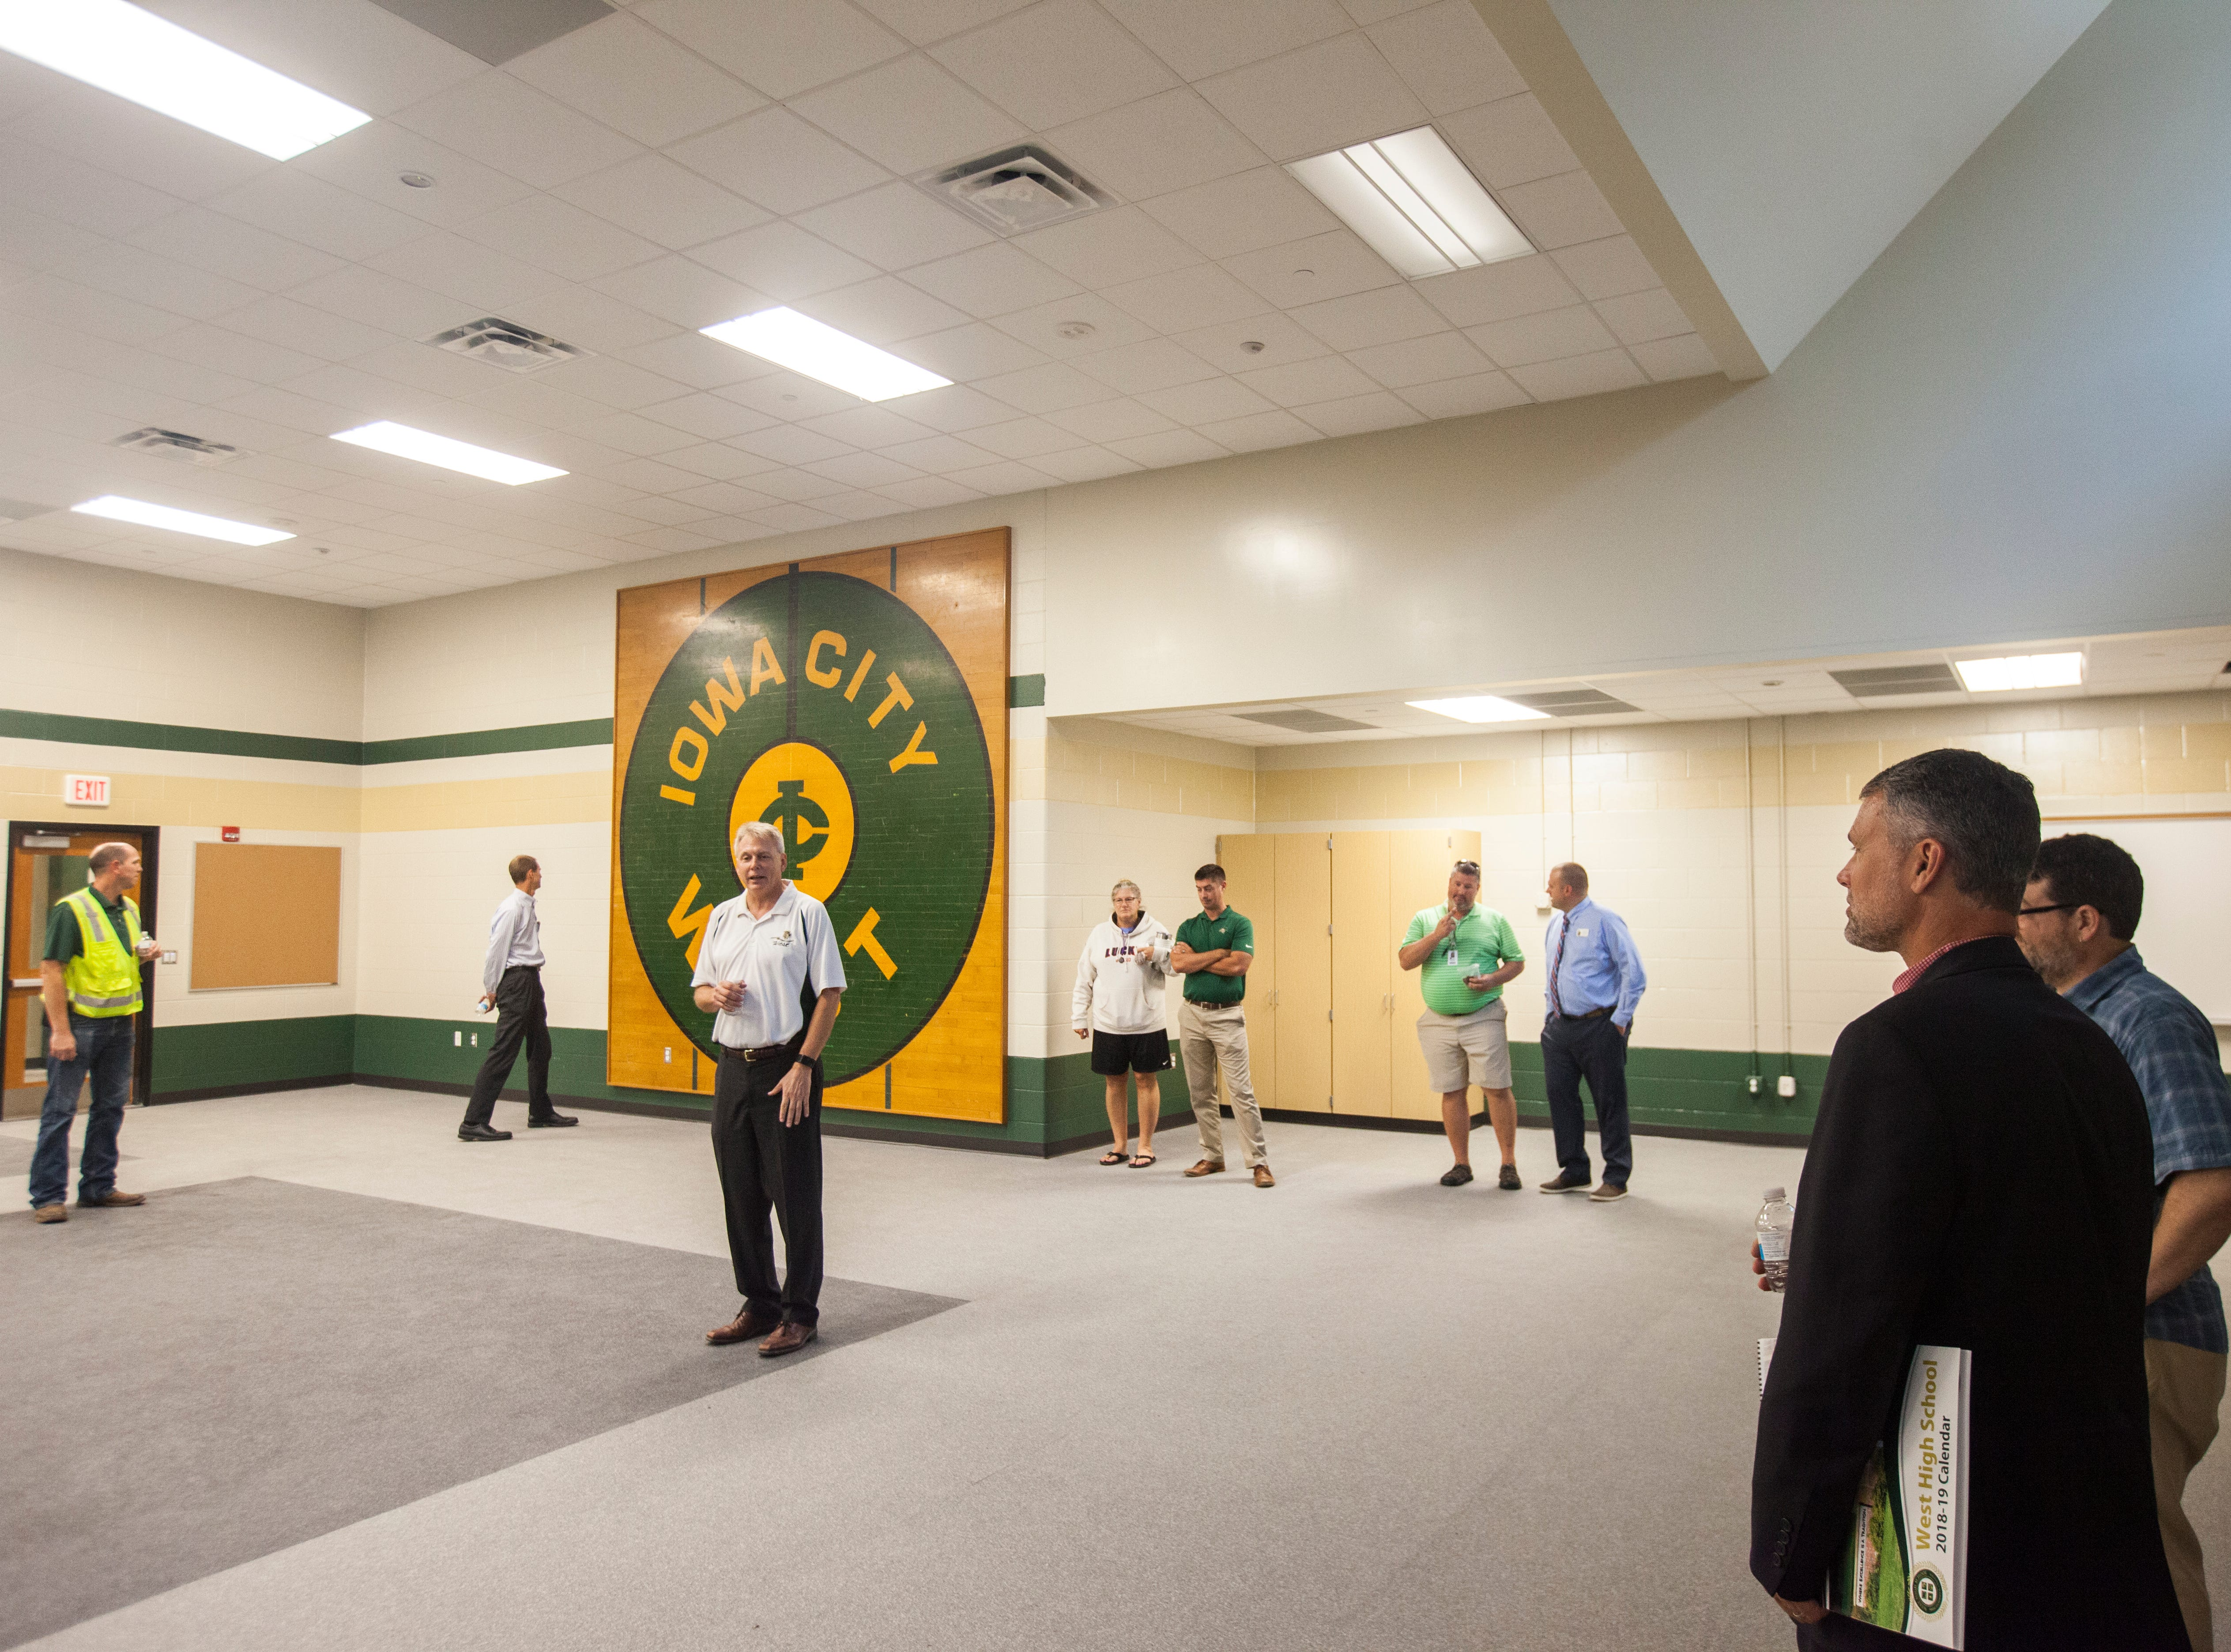 Gregg Shoultz, West High principal, speaks in a weight room during a tour of a recently completed addition to facilities on Wednesday, Aug. 15, 2018, at West High School in Iowa City. The floor from the original gymnasium has been saved and turned into a wall hanging inside the weight room.